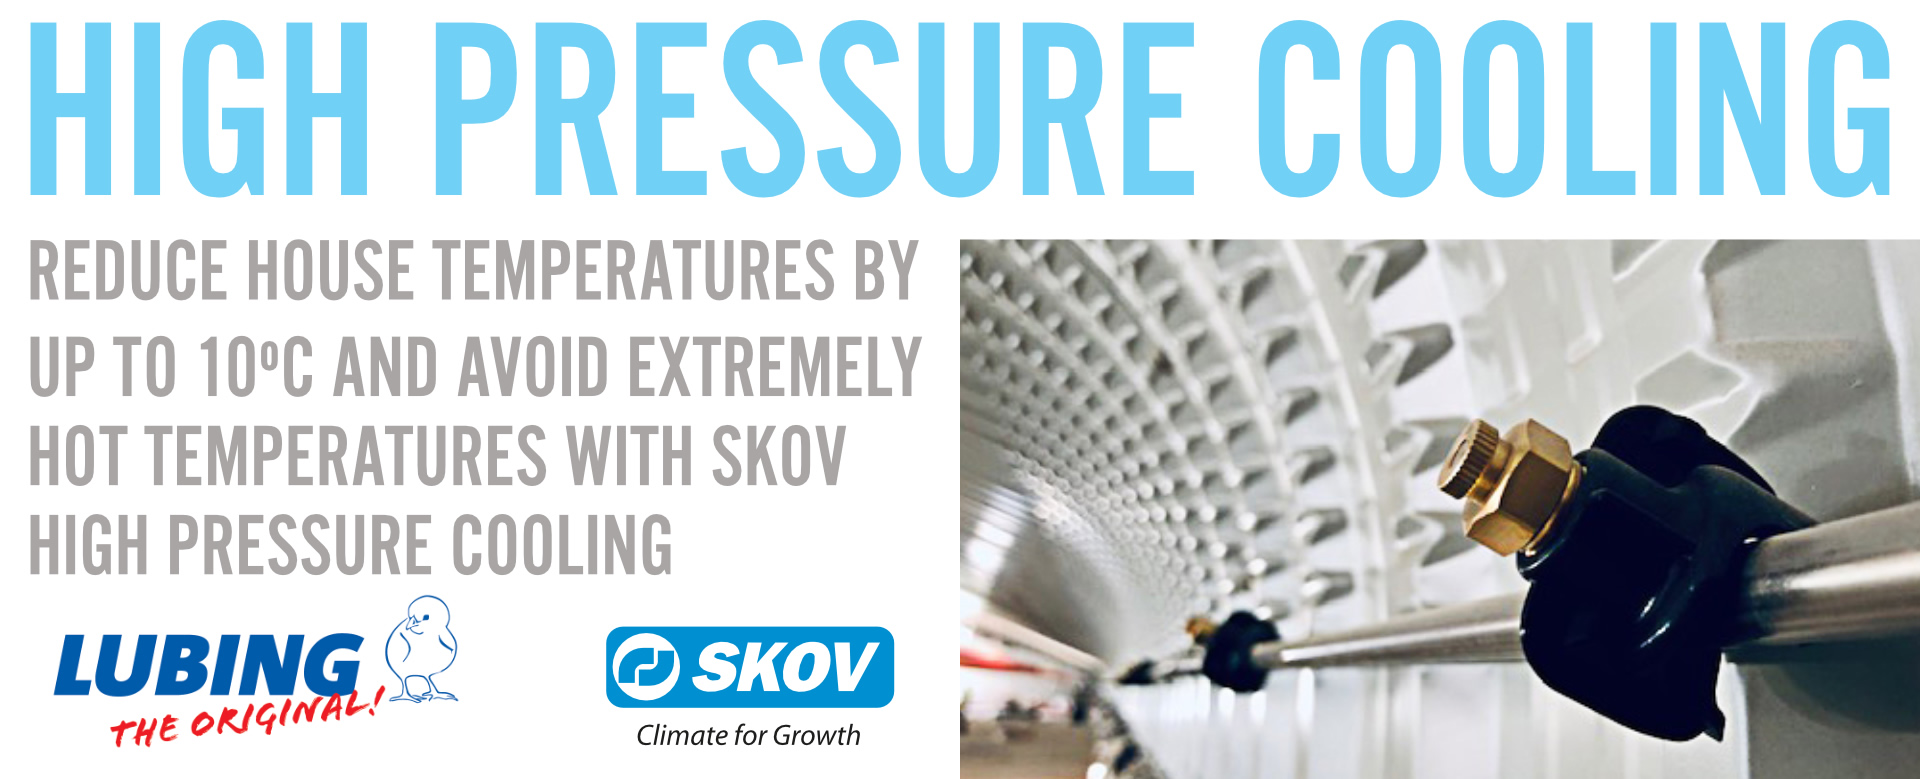 High Pressure Cooling, reduce house temperatures by up to 10c and avoid extremely hot temparatures with skov high pressure cooling